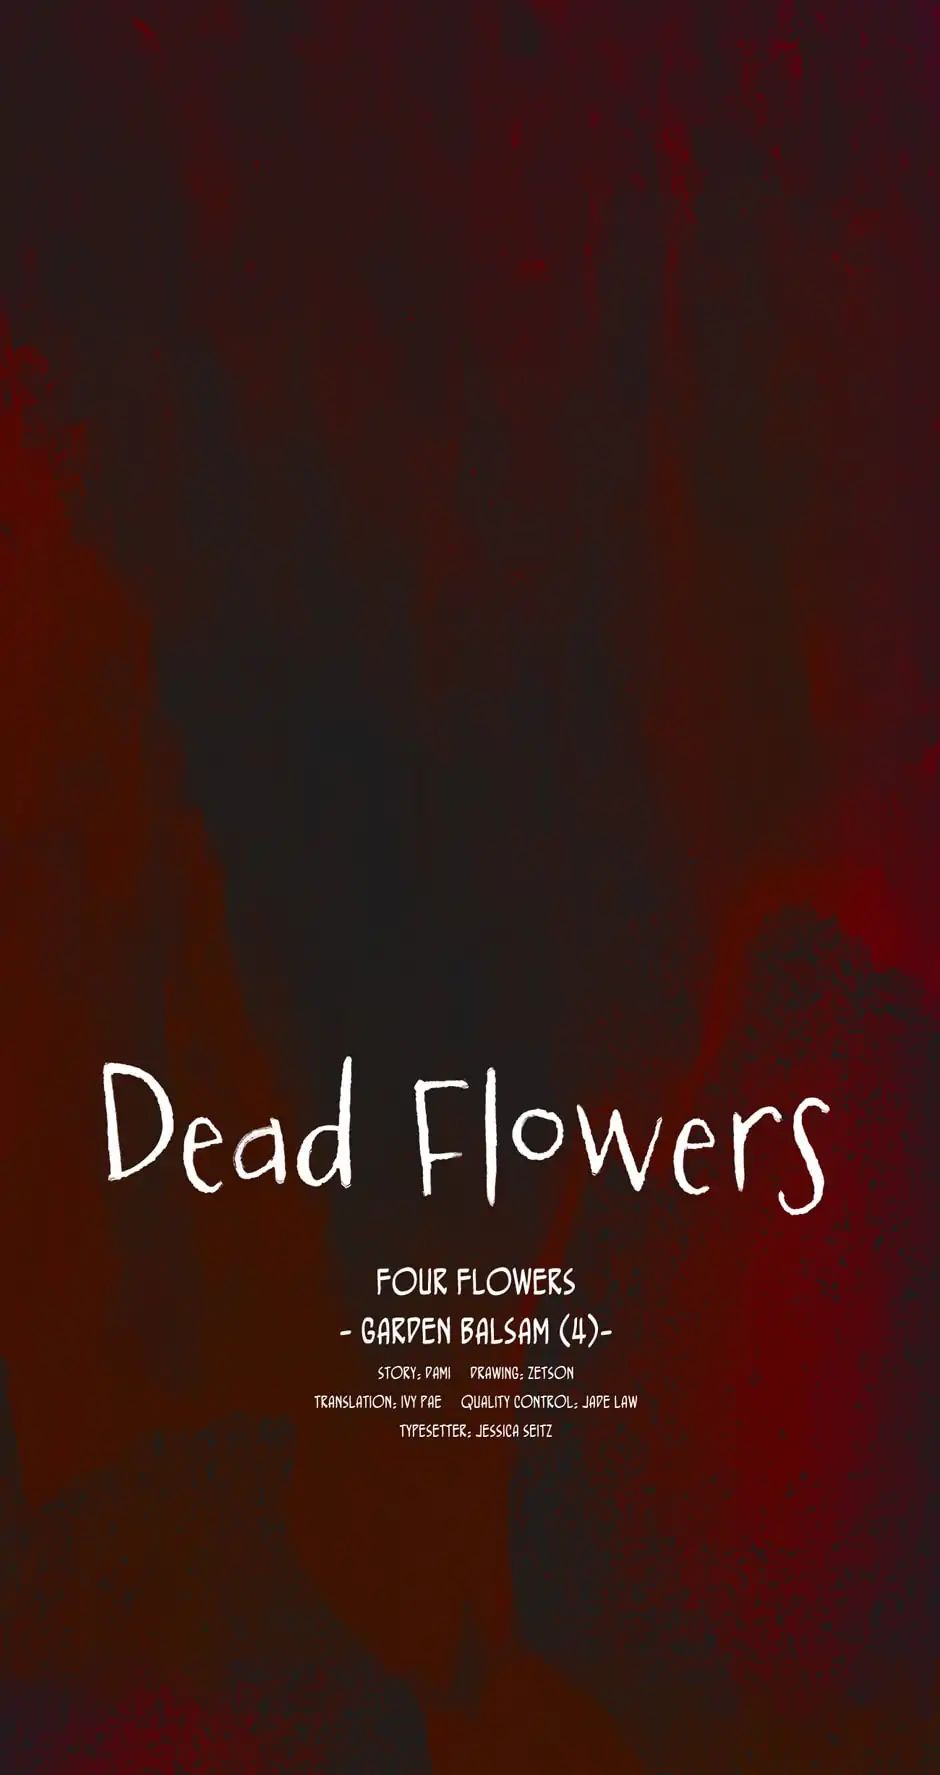 Dead Flowers Chapter 4: Four Flowers - Garden Balsam (4)